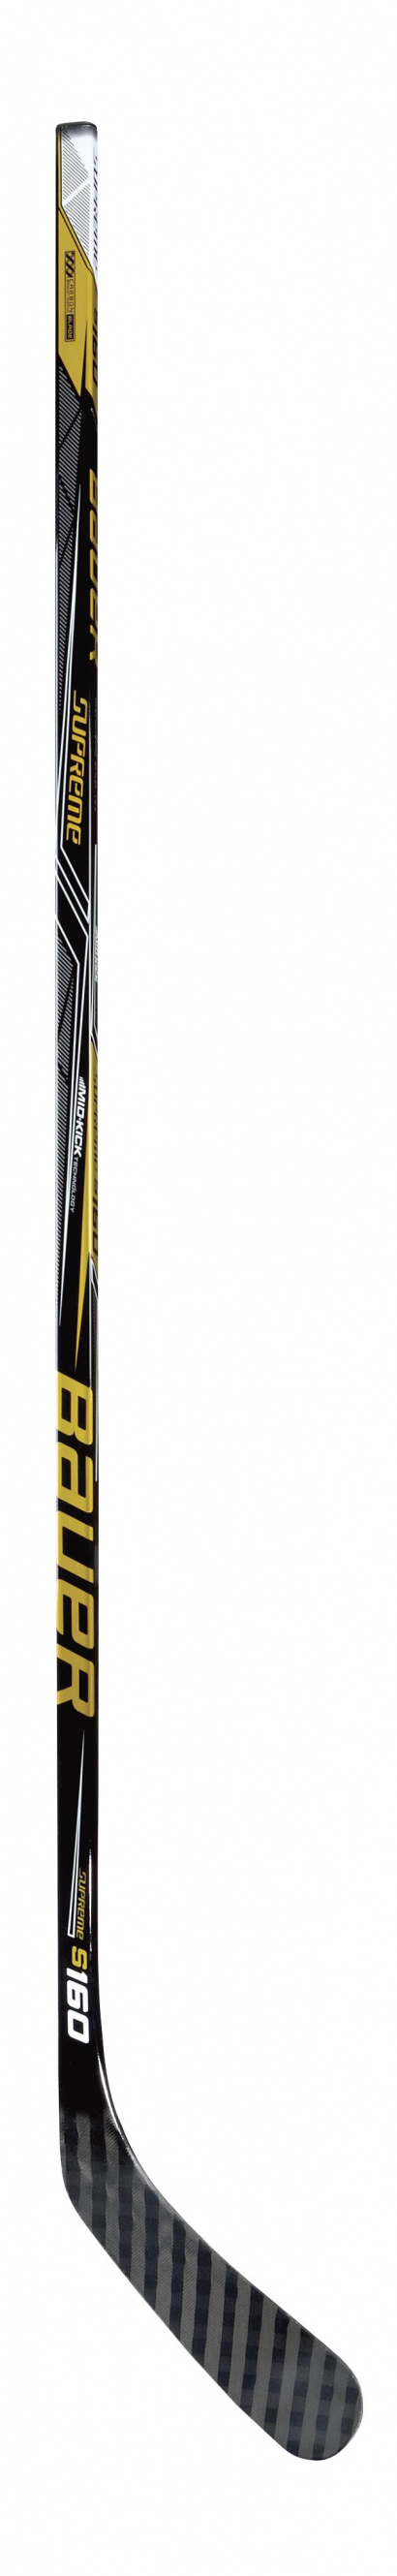 Hockey Stick Bauer SUPREME S160 Grip Jr / Junior 52